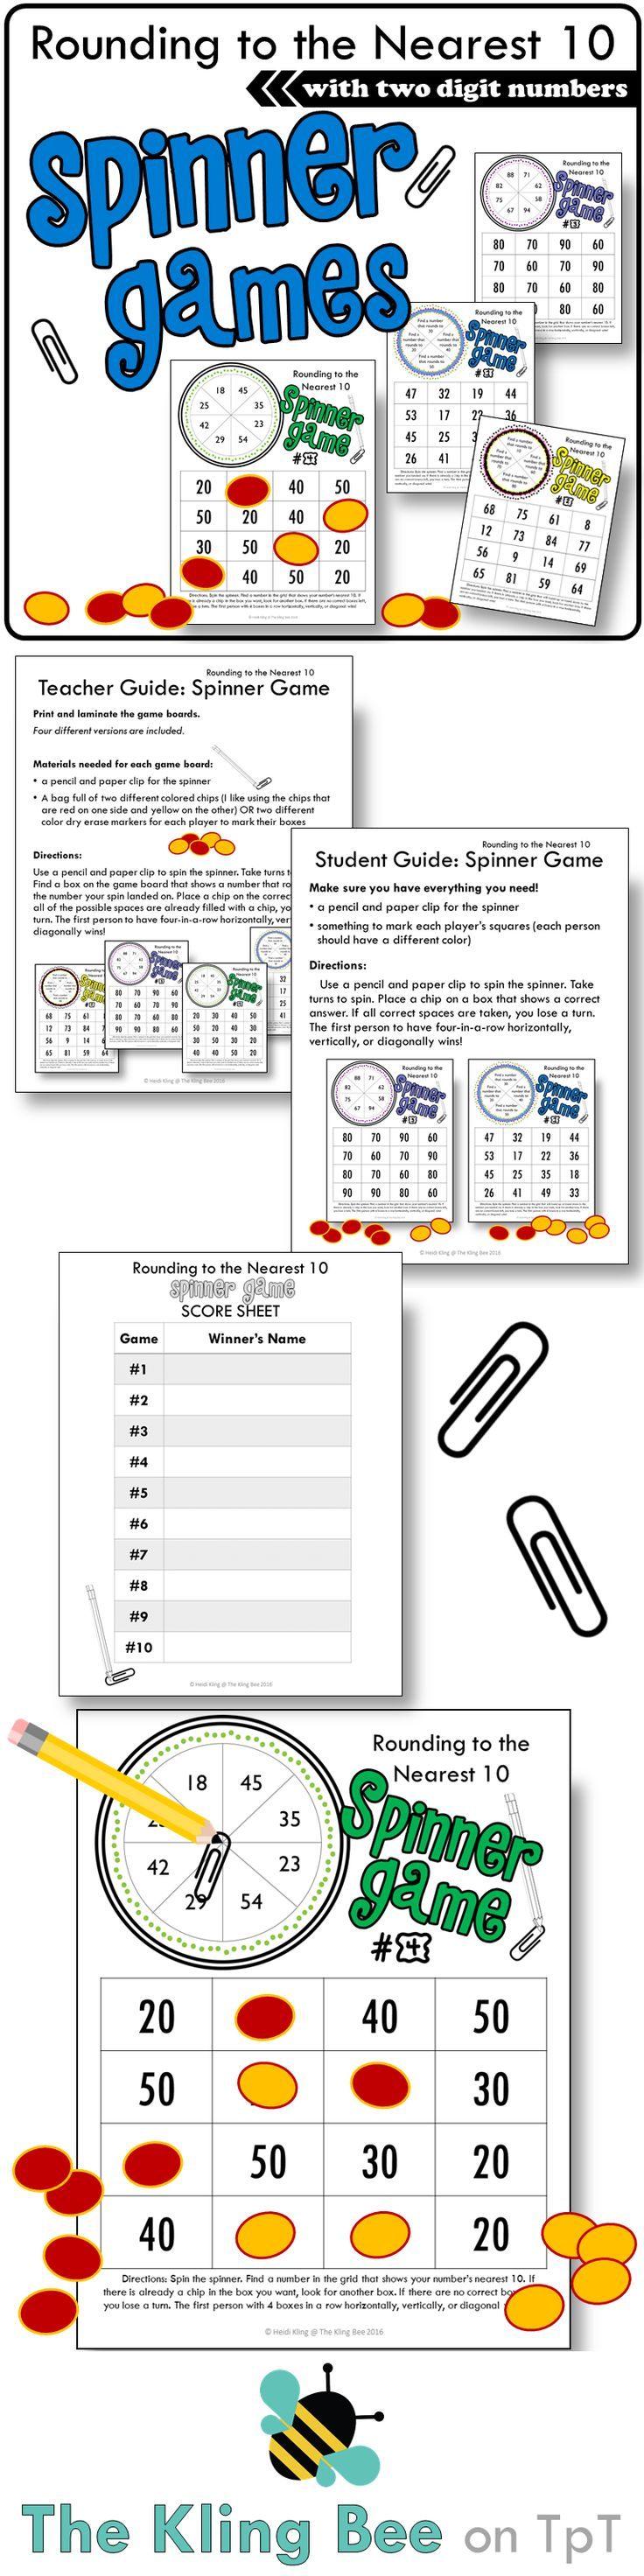 Round to the Nearest Ten using two digit numbers. Spinner games make a great addition to math workshop, centers, and independent stations! Included are four versions of the game, a teacher guide, a student guide, and a winner recording sheet.Please view the preview to read the Teacher and Student Guides, and to see a game board up close.